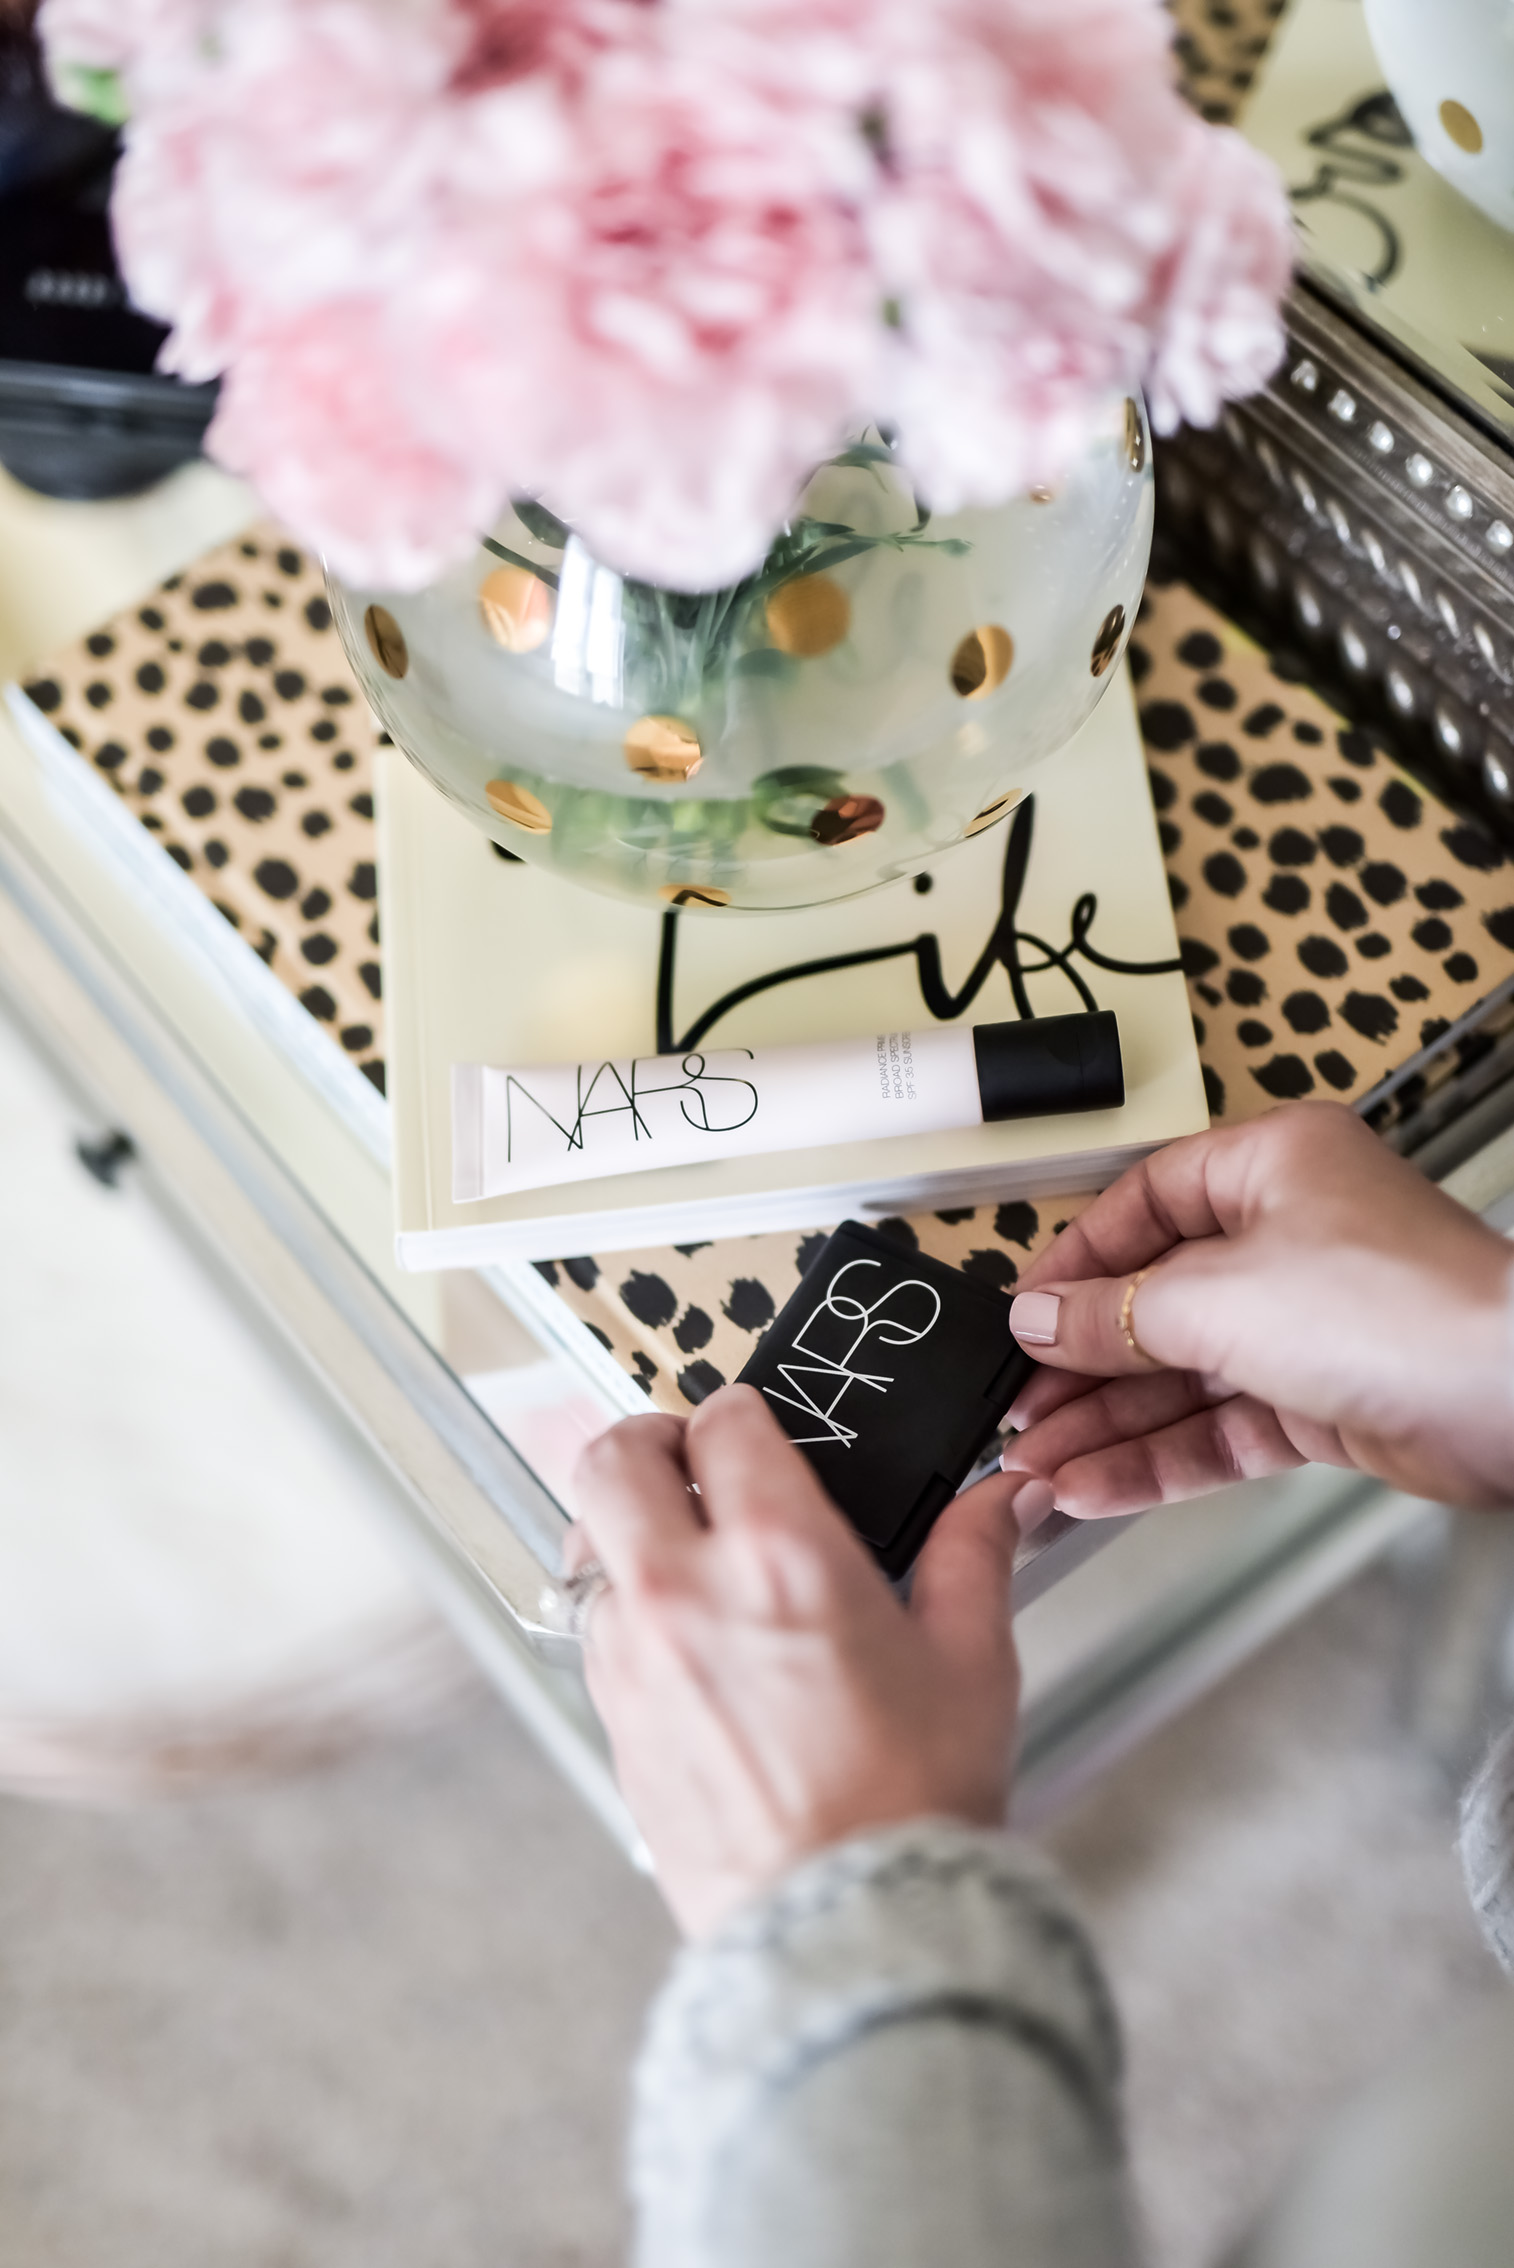 Houston fashion and lifestyle blogger Tiffany Jais sharing her 3 beauty favorites, click to read more | NARS Radiance primer